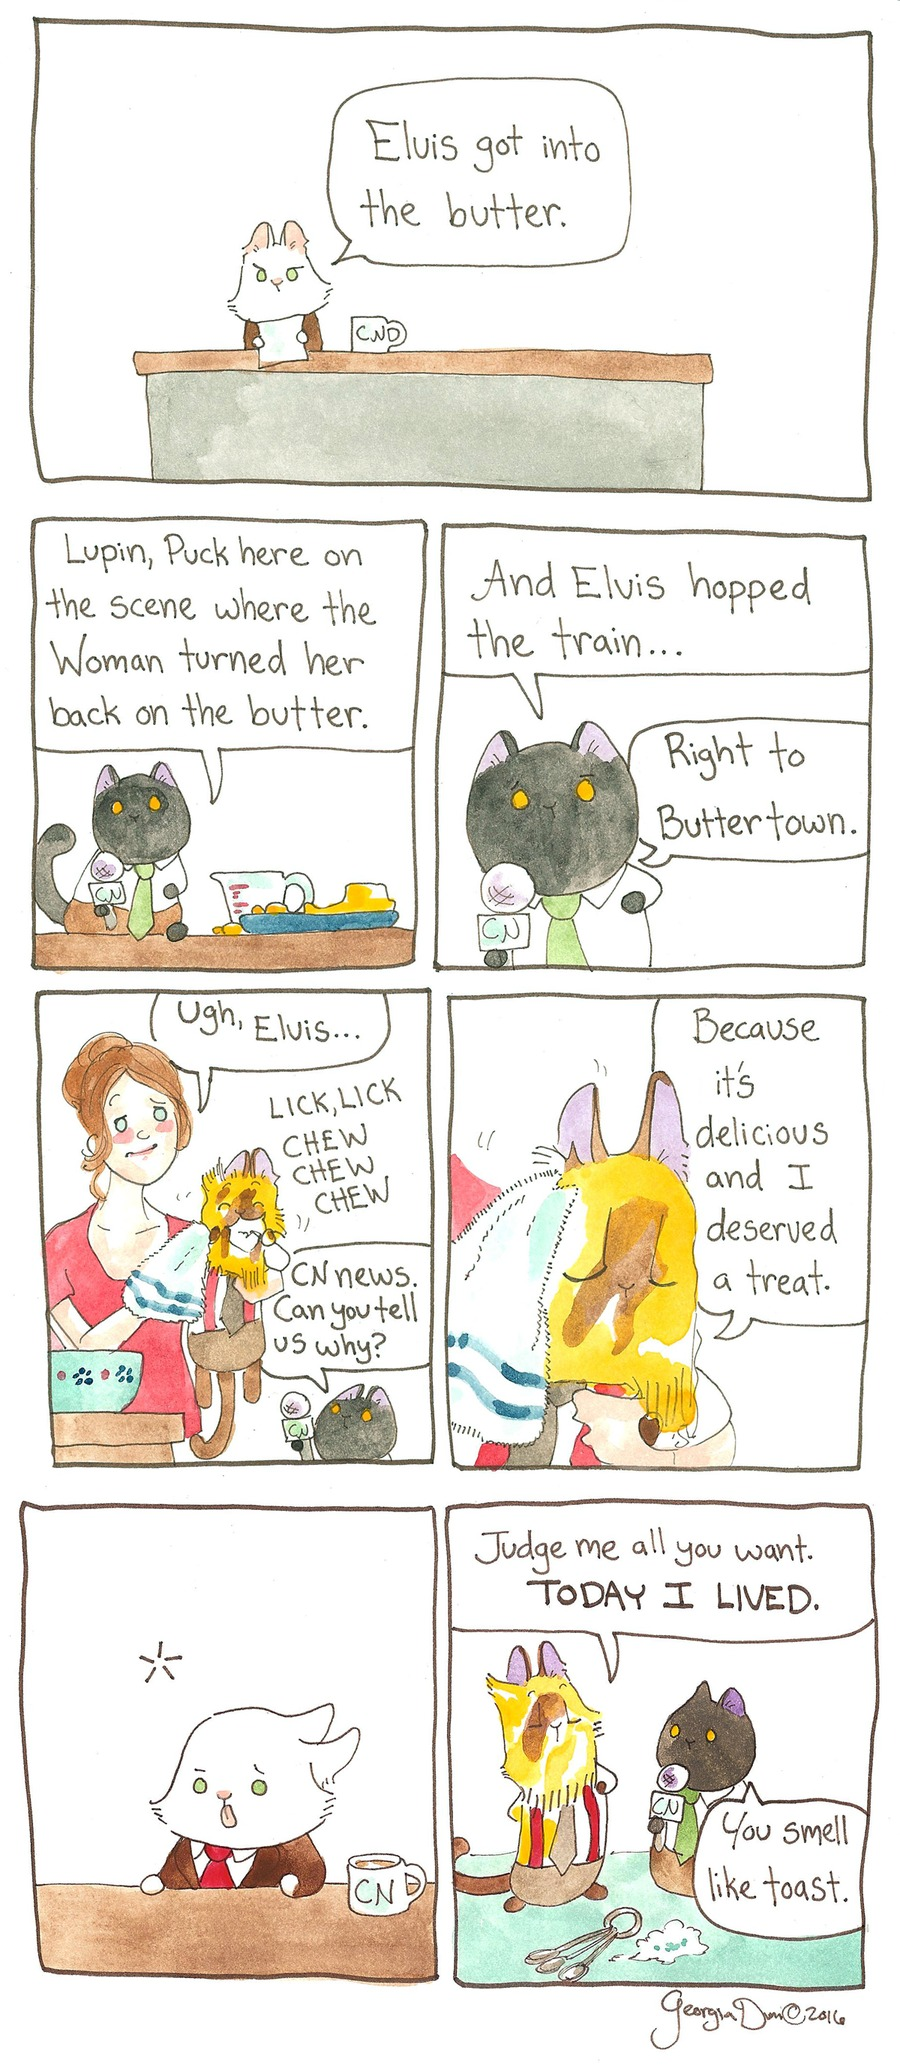 Lupin: Elvis got into the butter. 